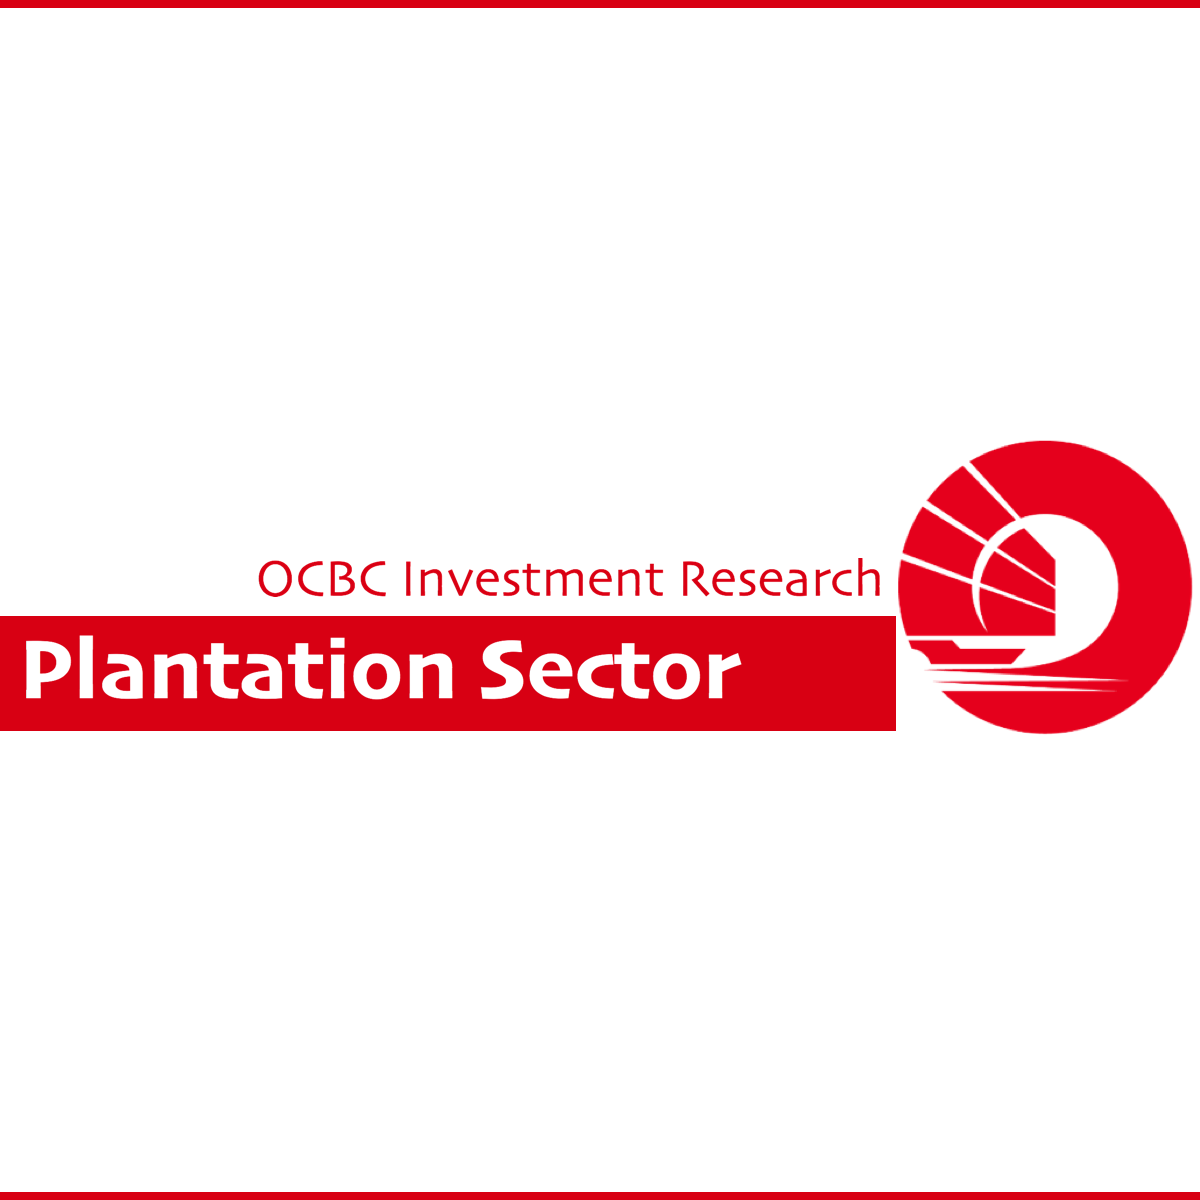 Plantations sector - OCBC Investment 2016-12-12: Demand would have to be robust next year